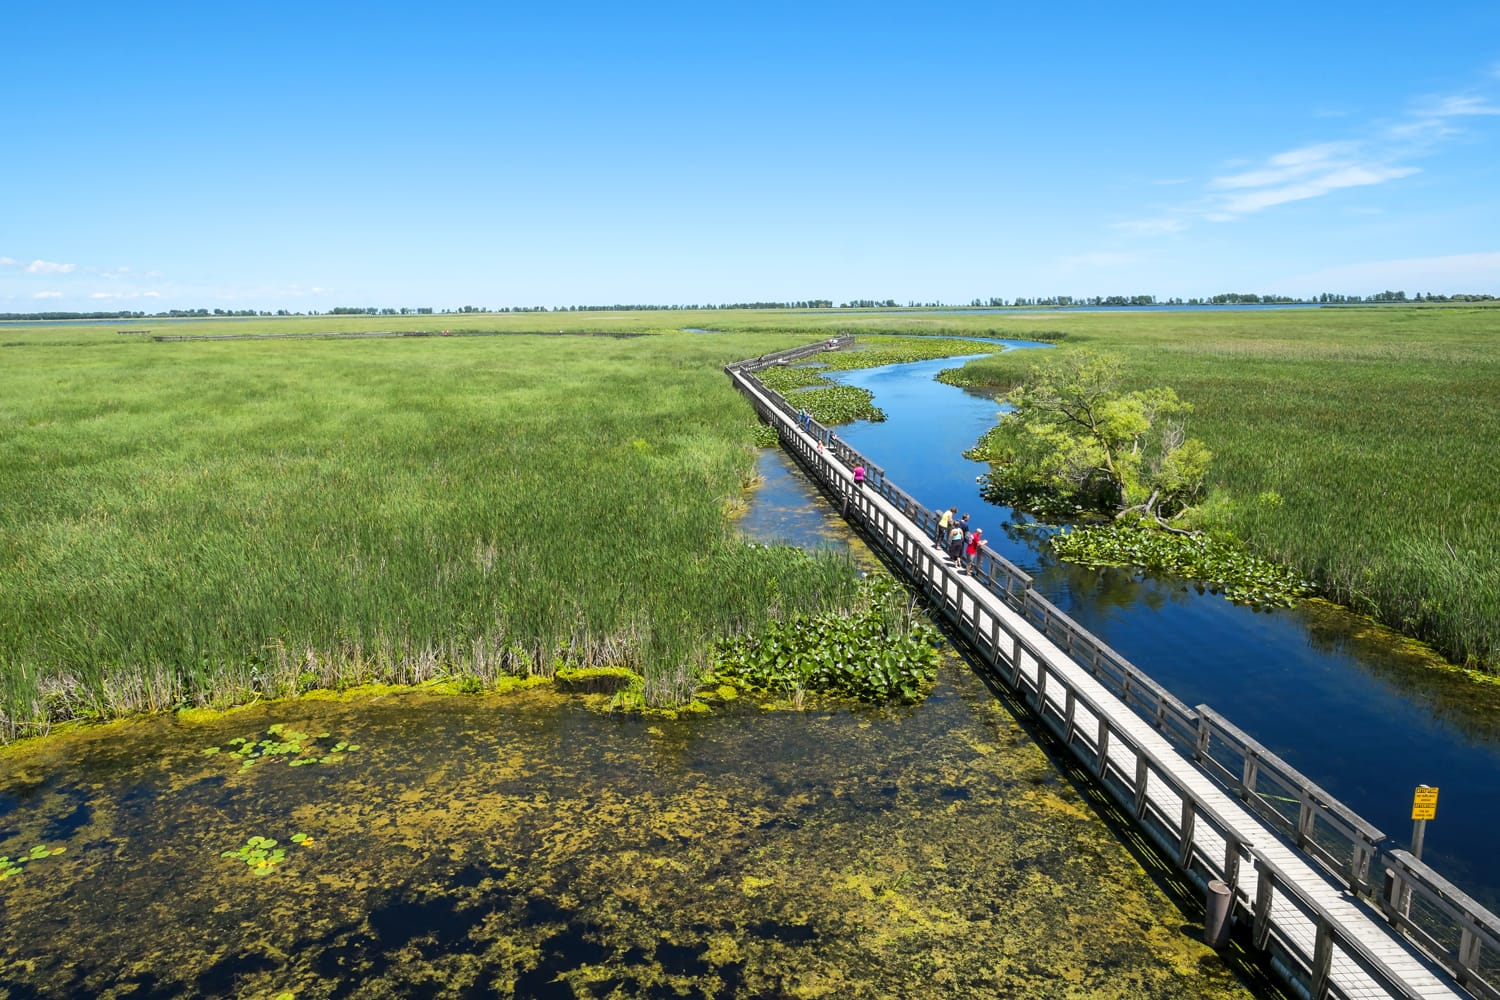 Point Pelee National Park Marsh Boardwalk in Canada